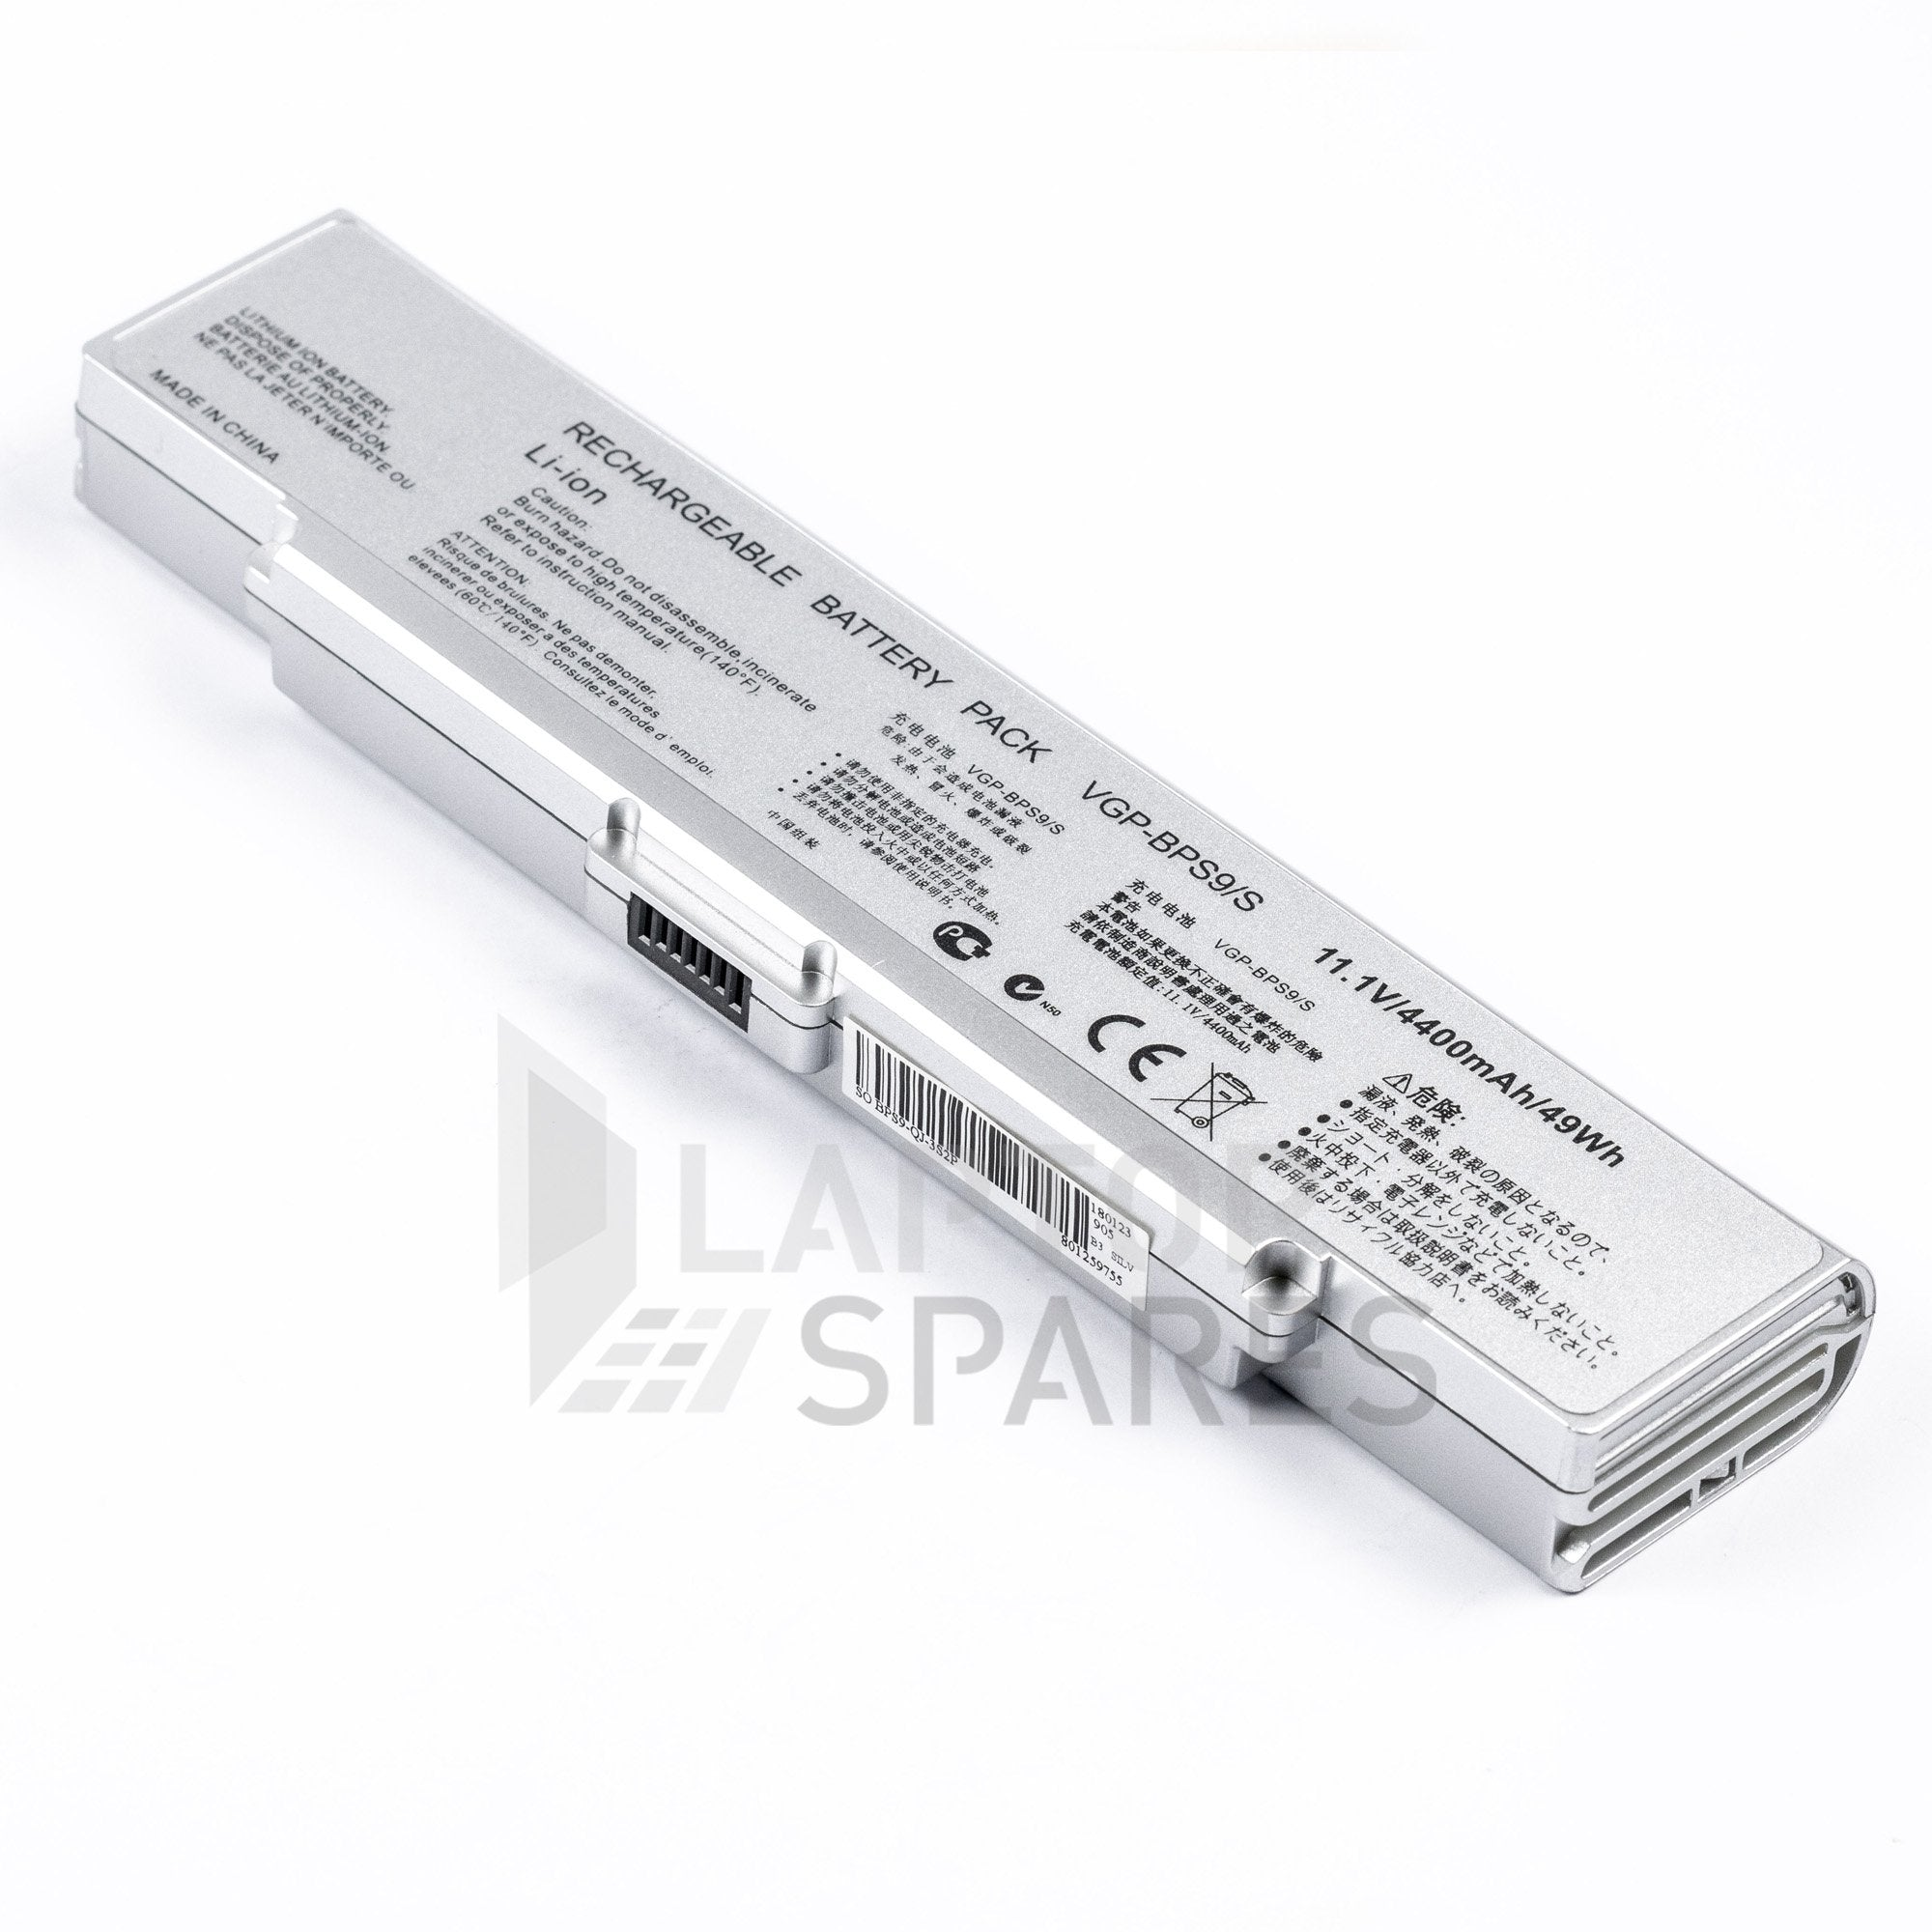 Sony VAIO VGN-CR23/L 4400mAh 6 Cell Battery